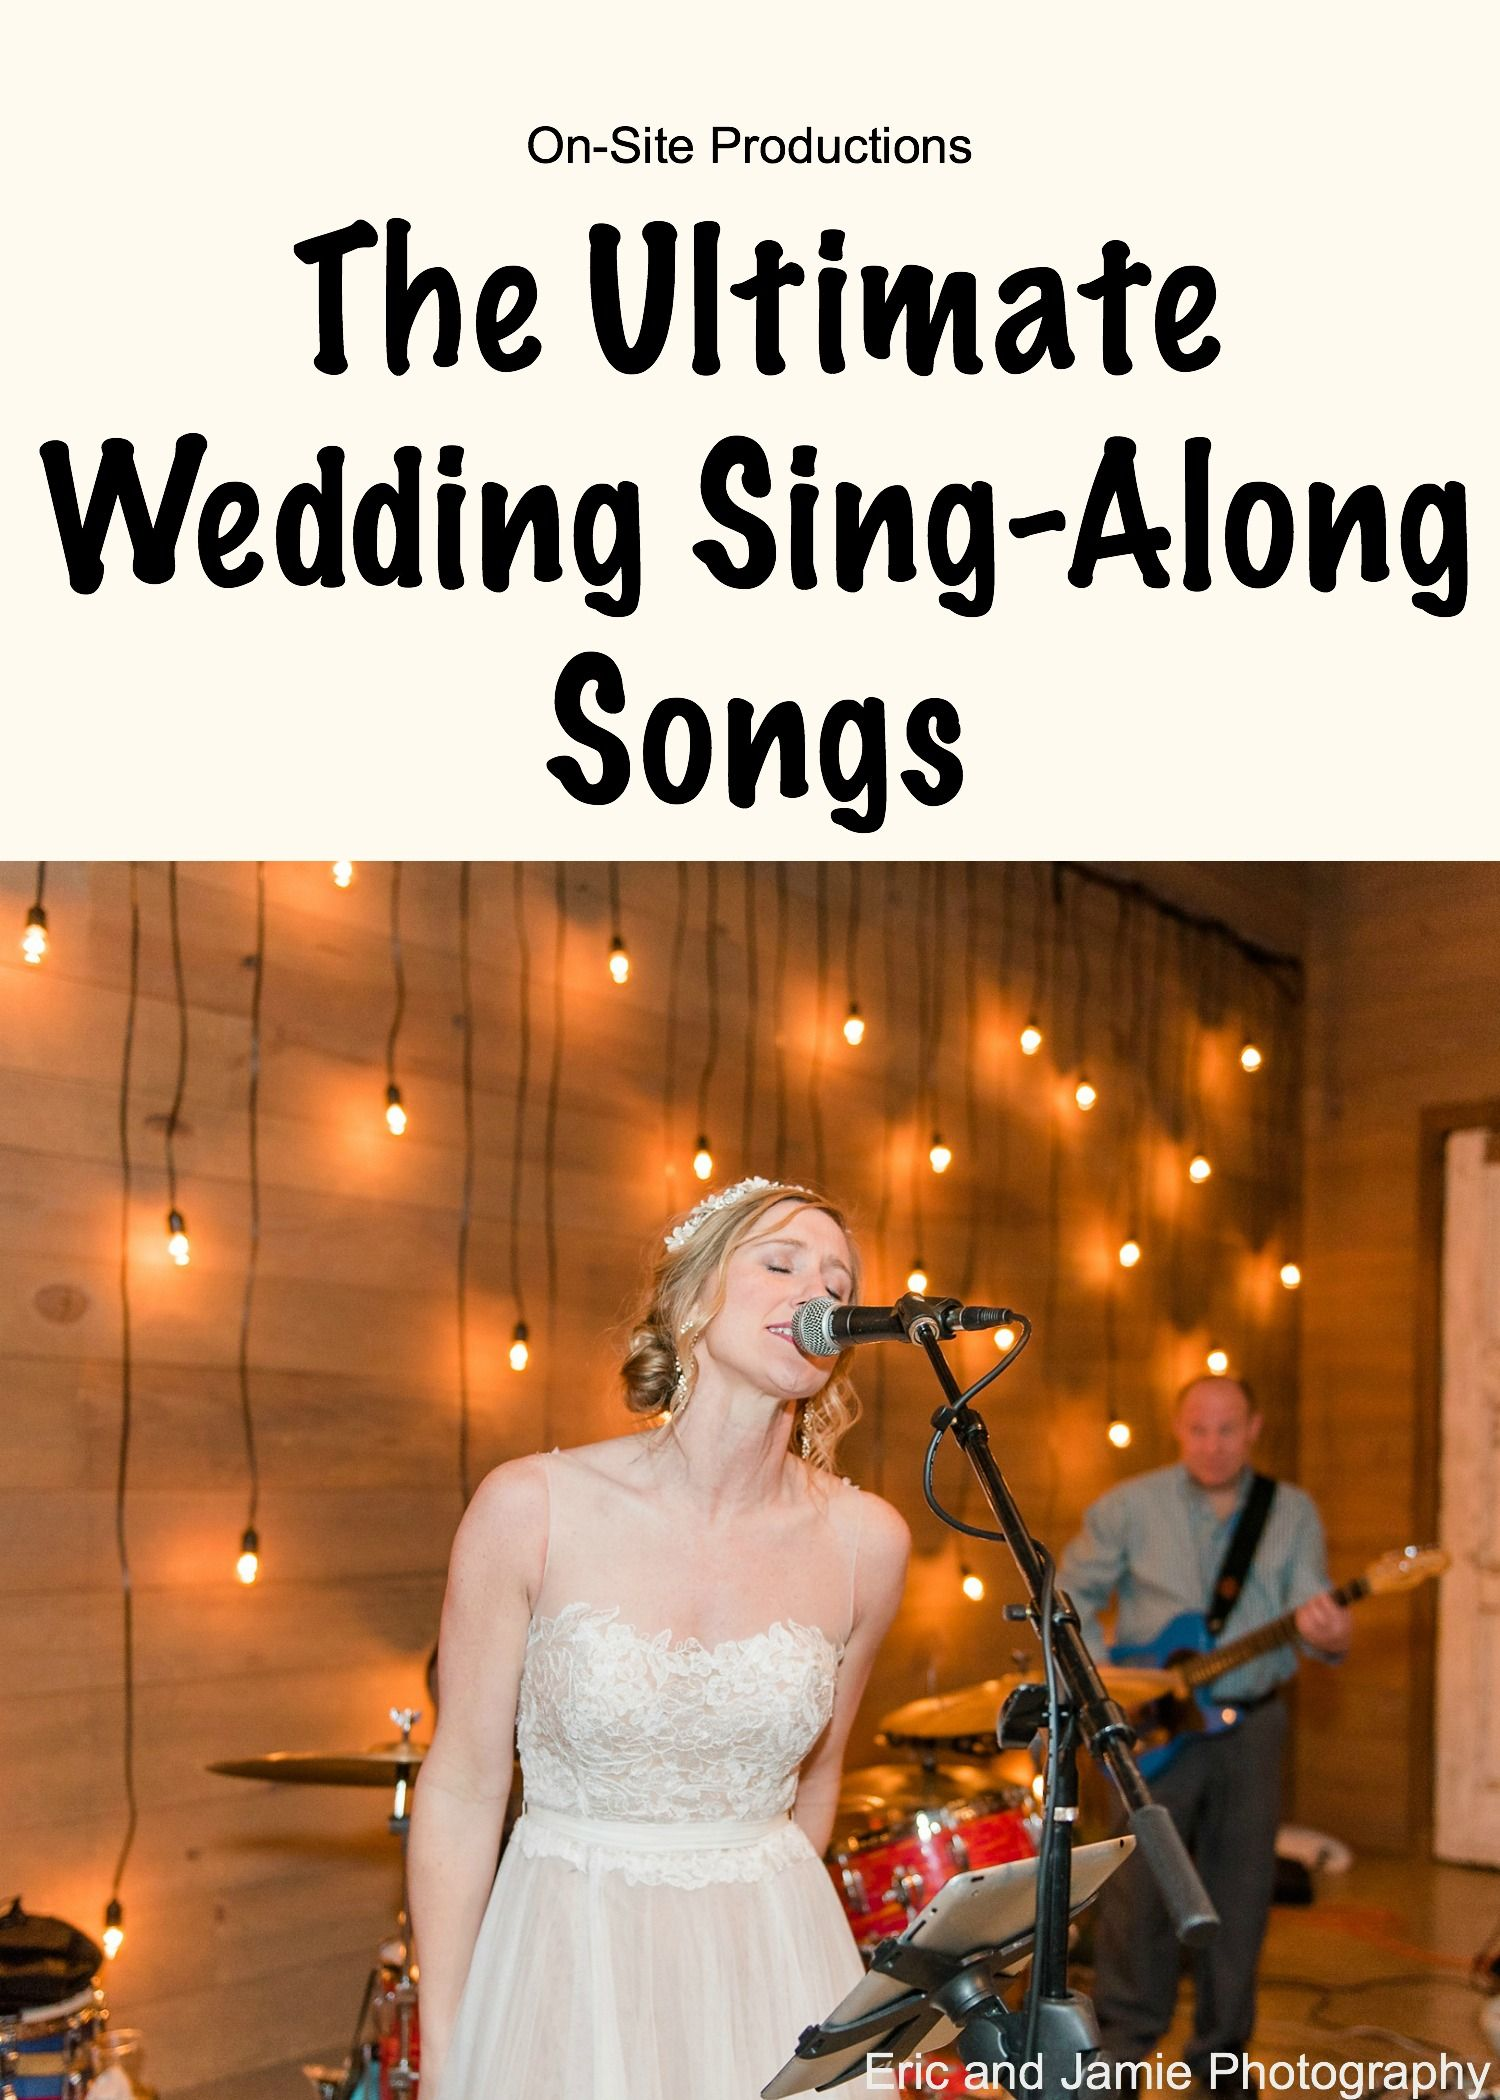 Awesome Sing Along Songs Create The Best Wedding MemoriesTheres Always Going To Be That One Guest Just Doesnt Danceno Matter What When You Play